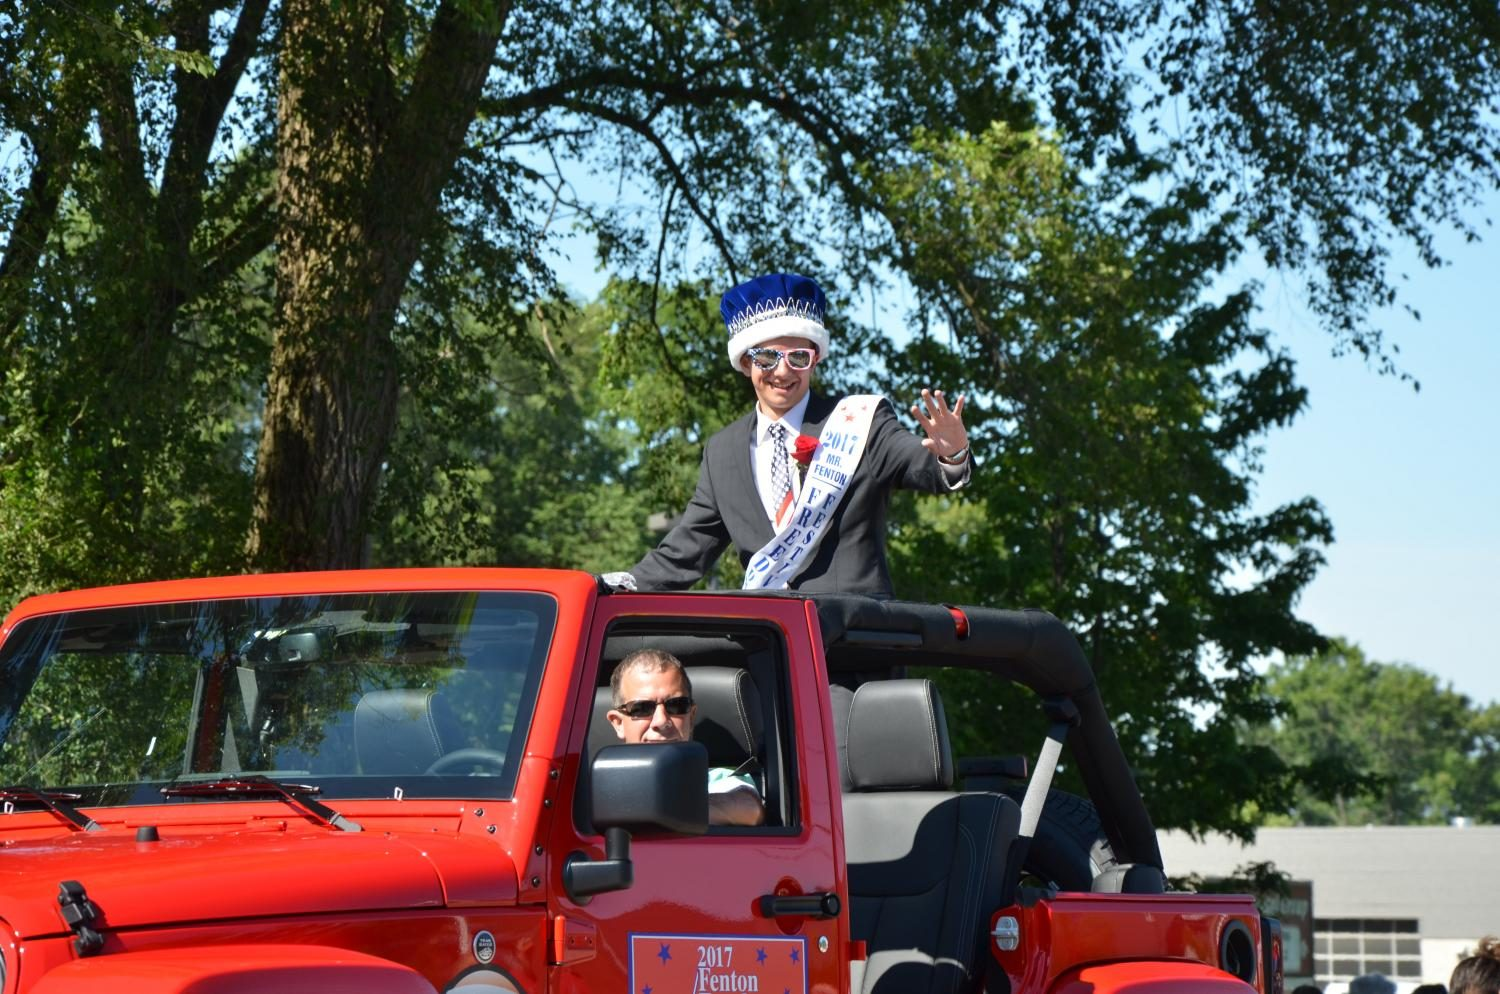 Senior Jake Taylor riding in the 2017 4th of July parade. Jake was awarded the 2017 freedom festival king.